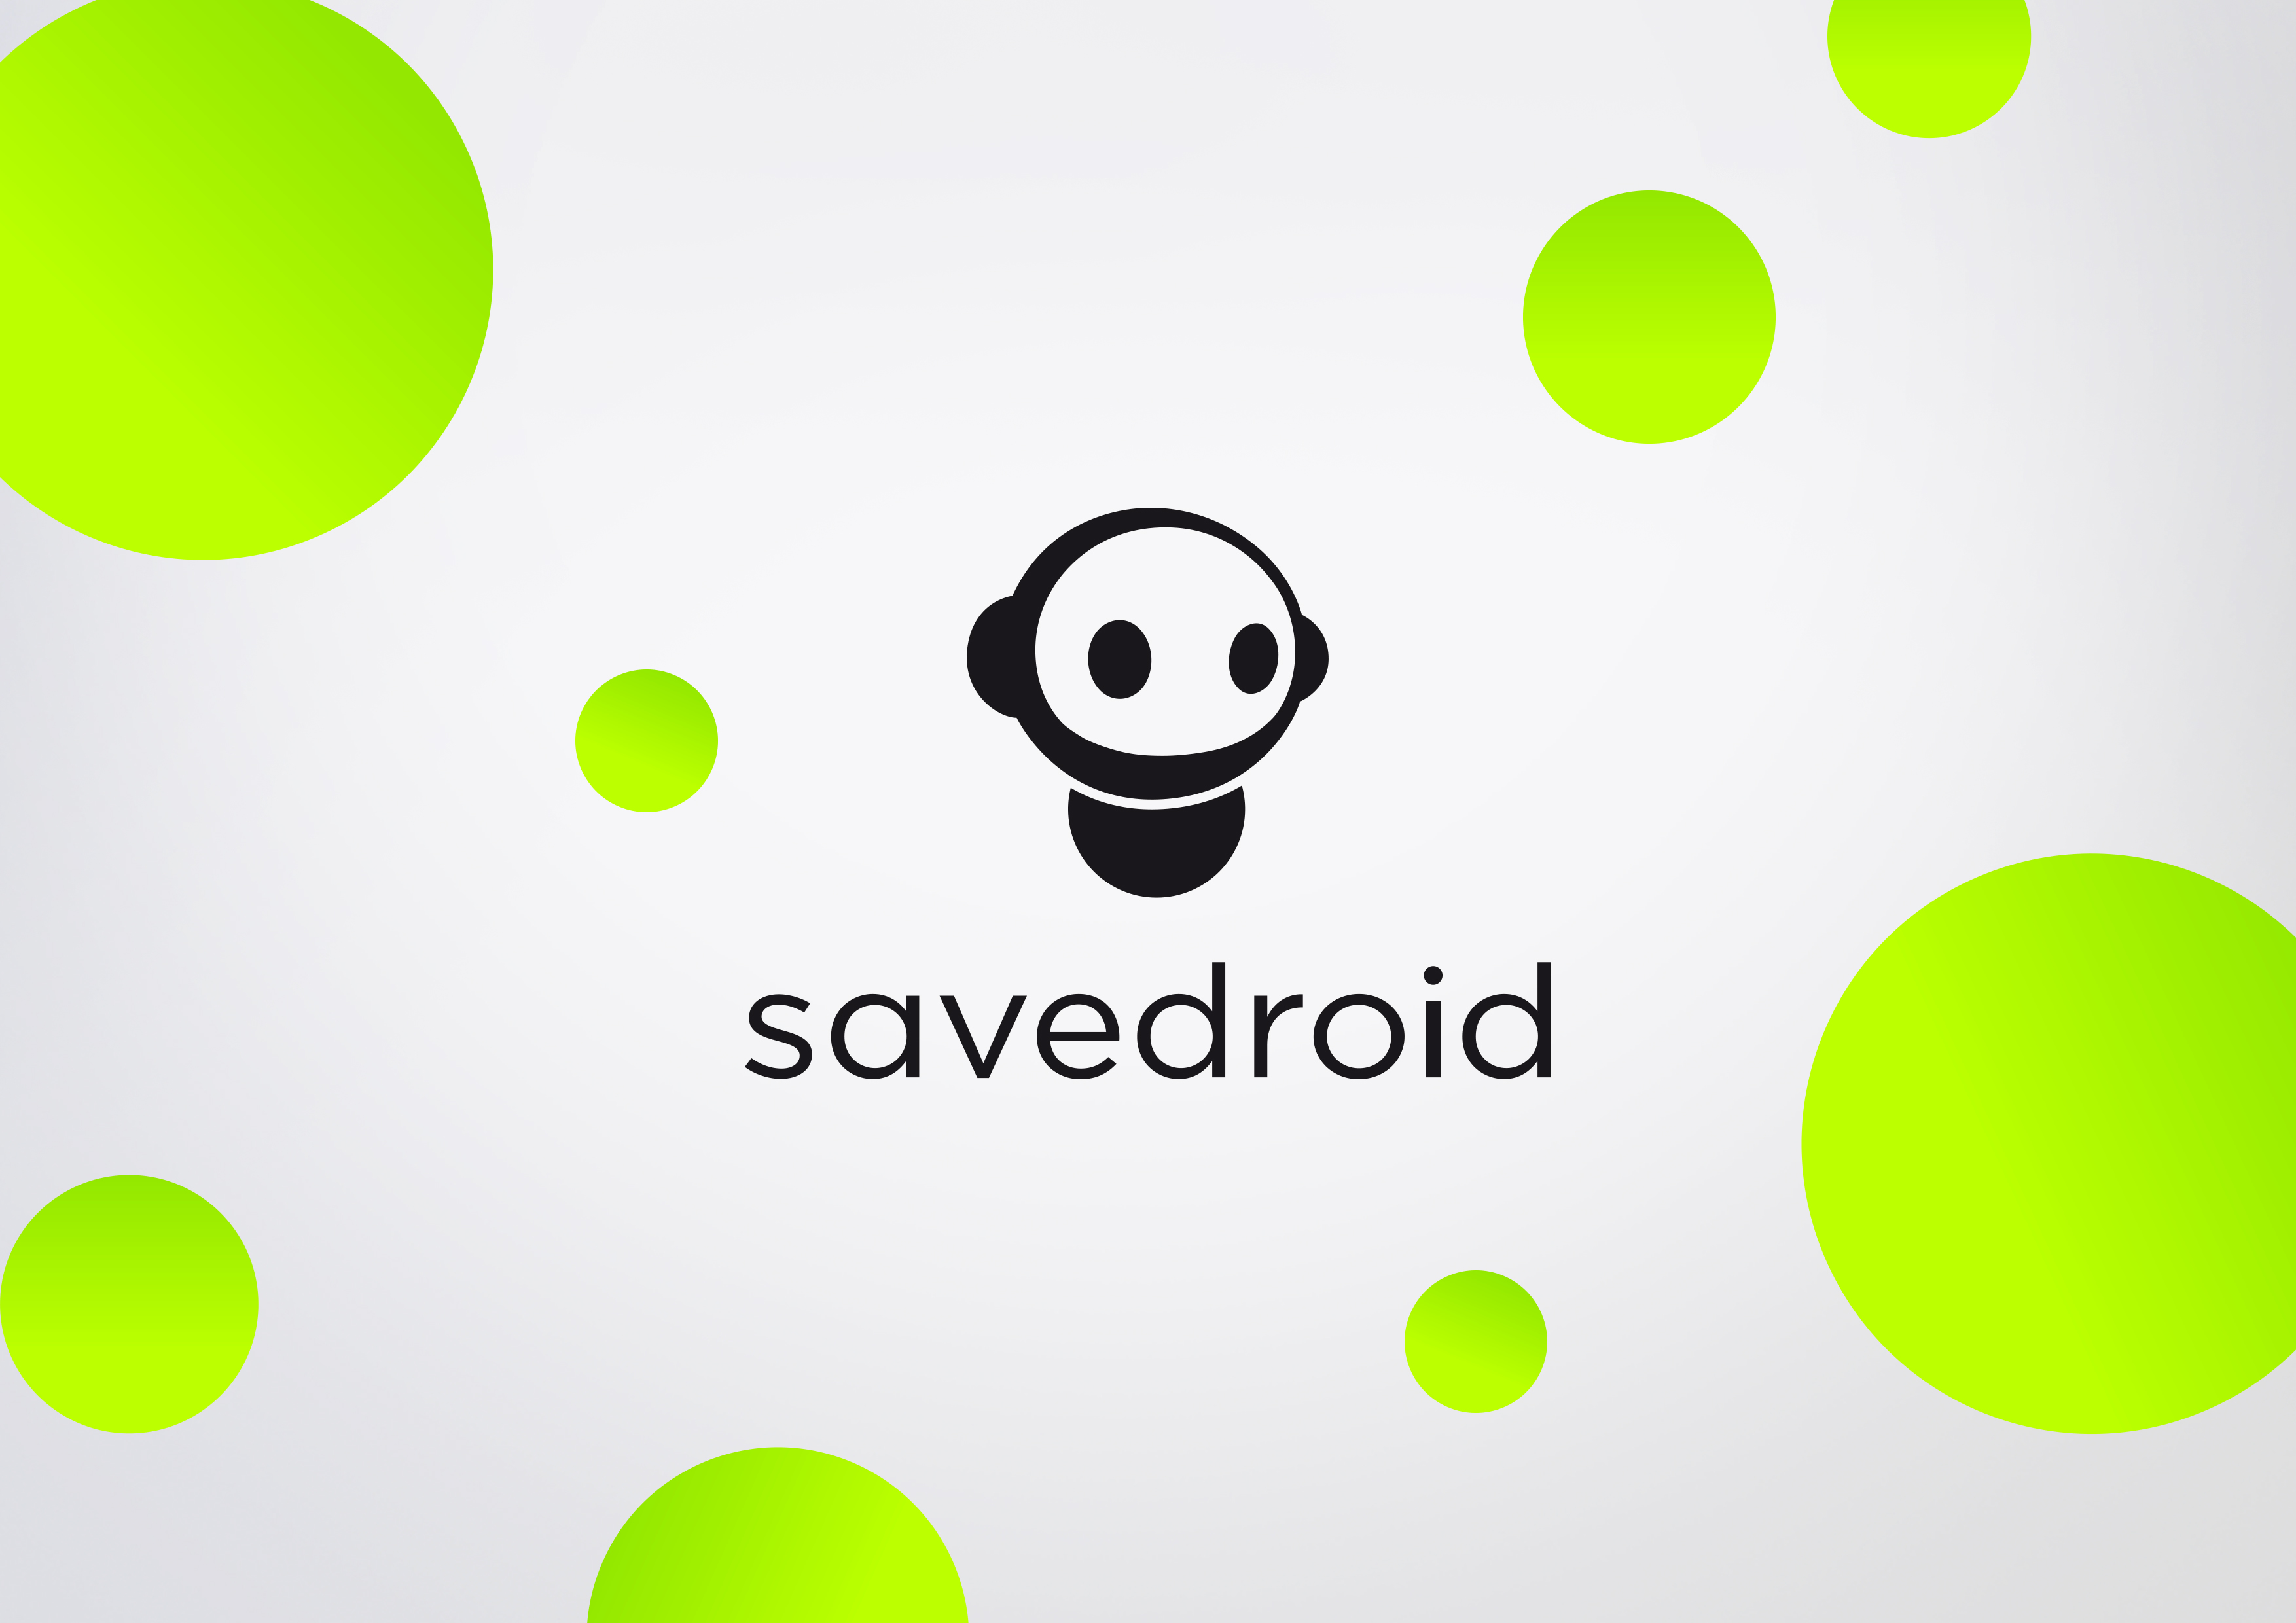 quandel-staudt-design-savedroid-07